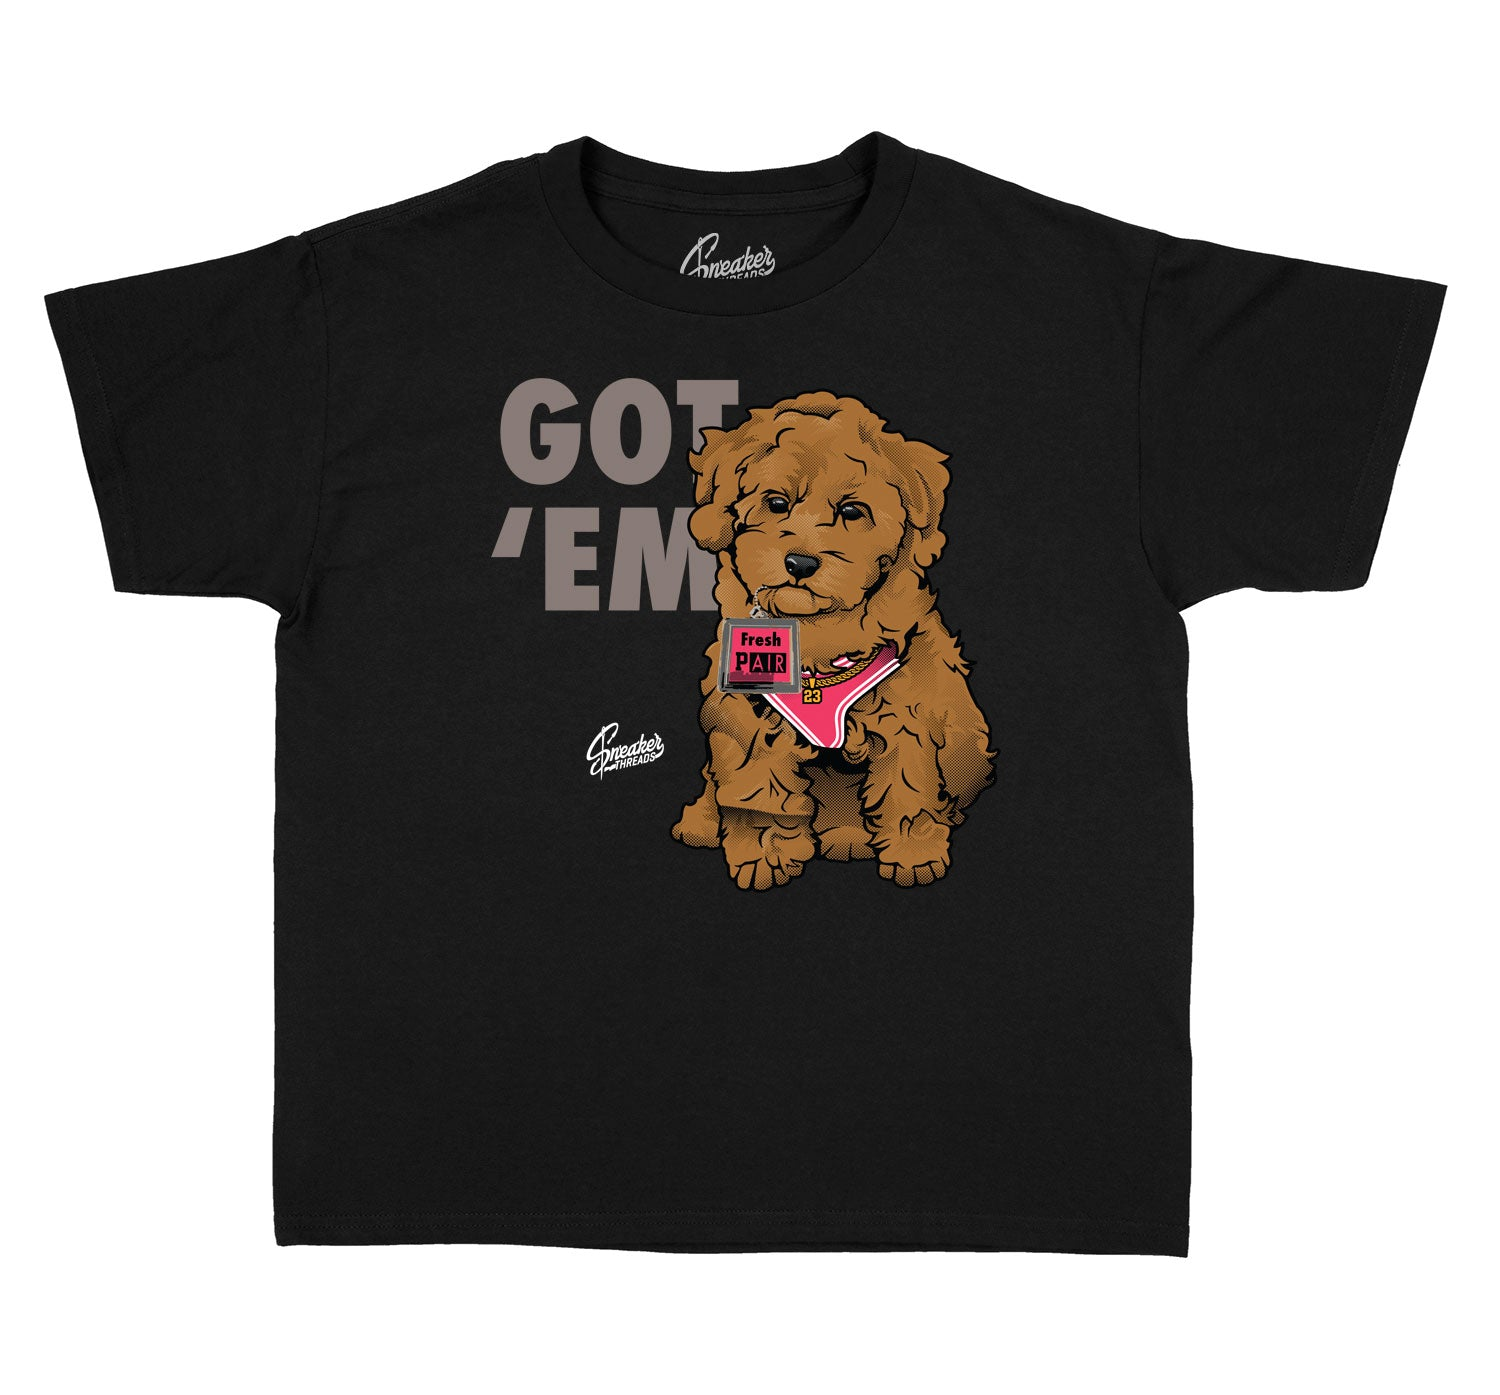 Kids Taupe Haze 4 Shirt - Got Em - Black